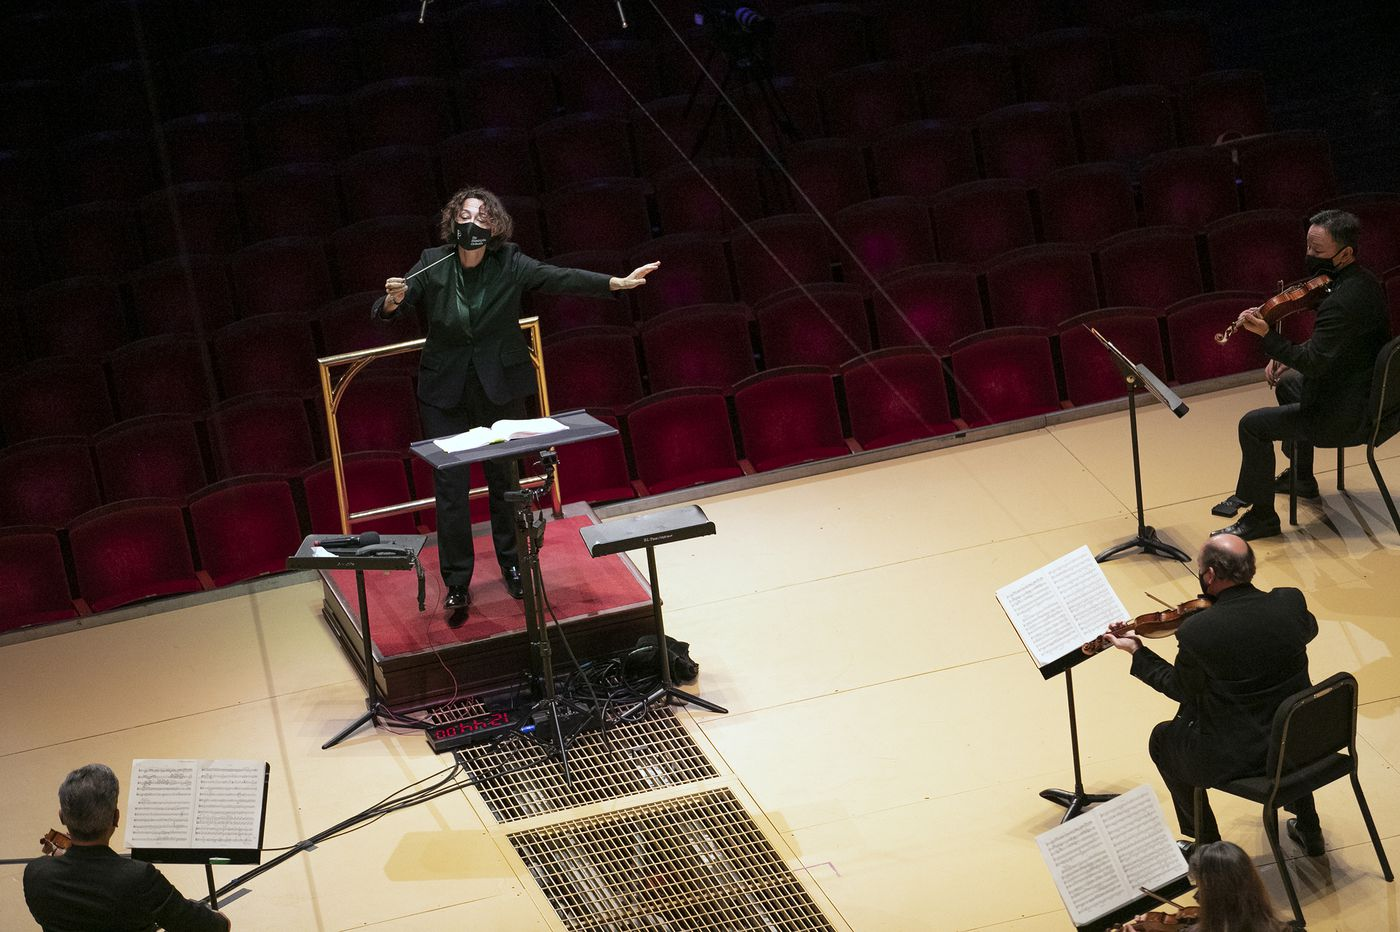 New Philadelphia Orchestra conductor Nathalie Stutzmann says it's a good time for women on the podium. And yet...